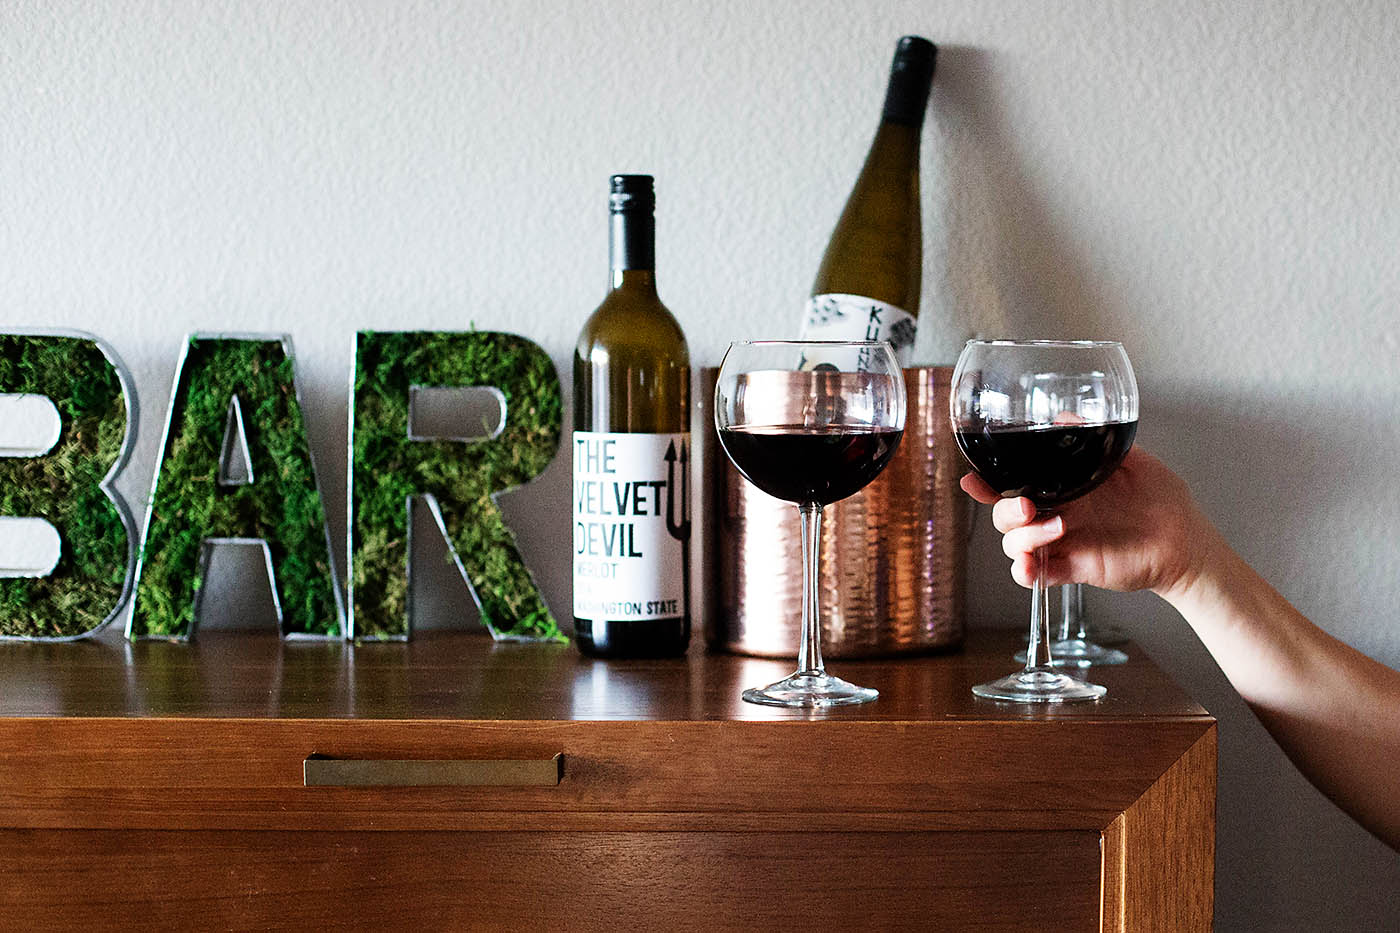 DIY mossy bar sign - so simple but a fun statement piece!